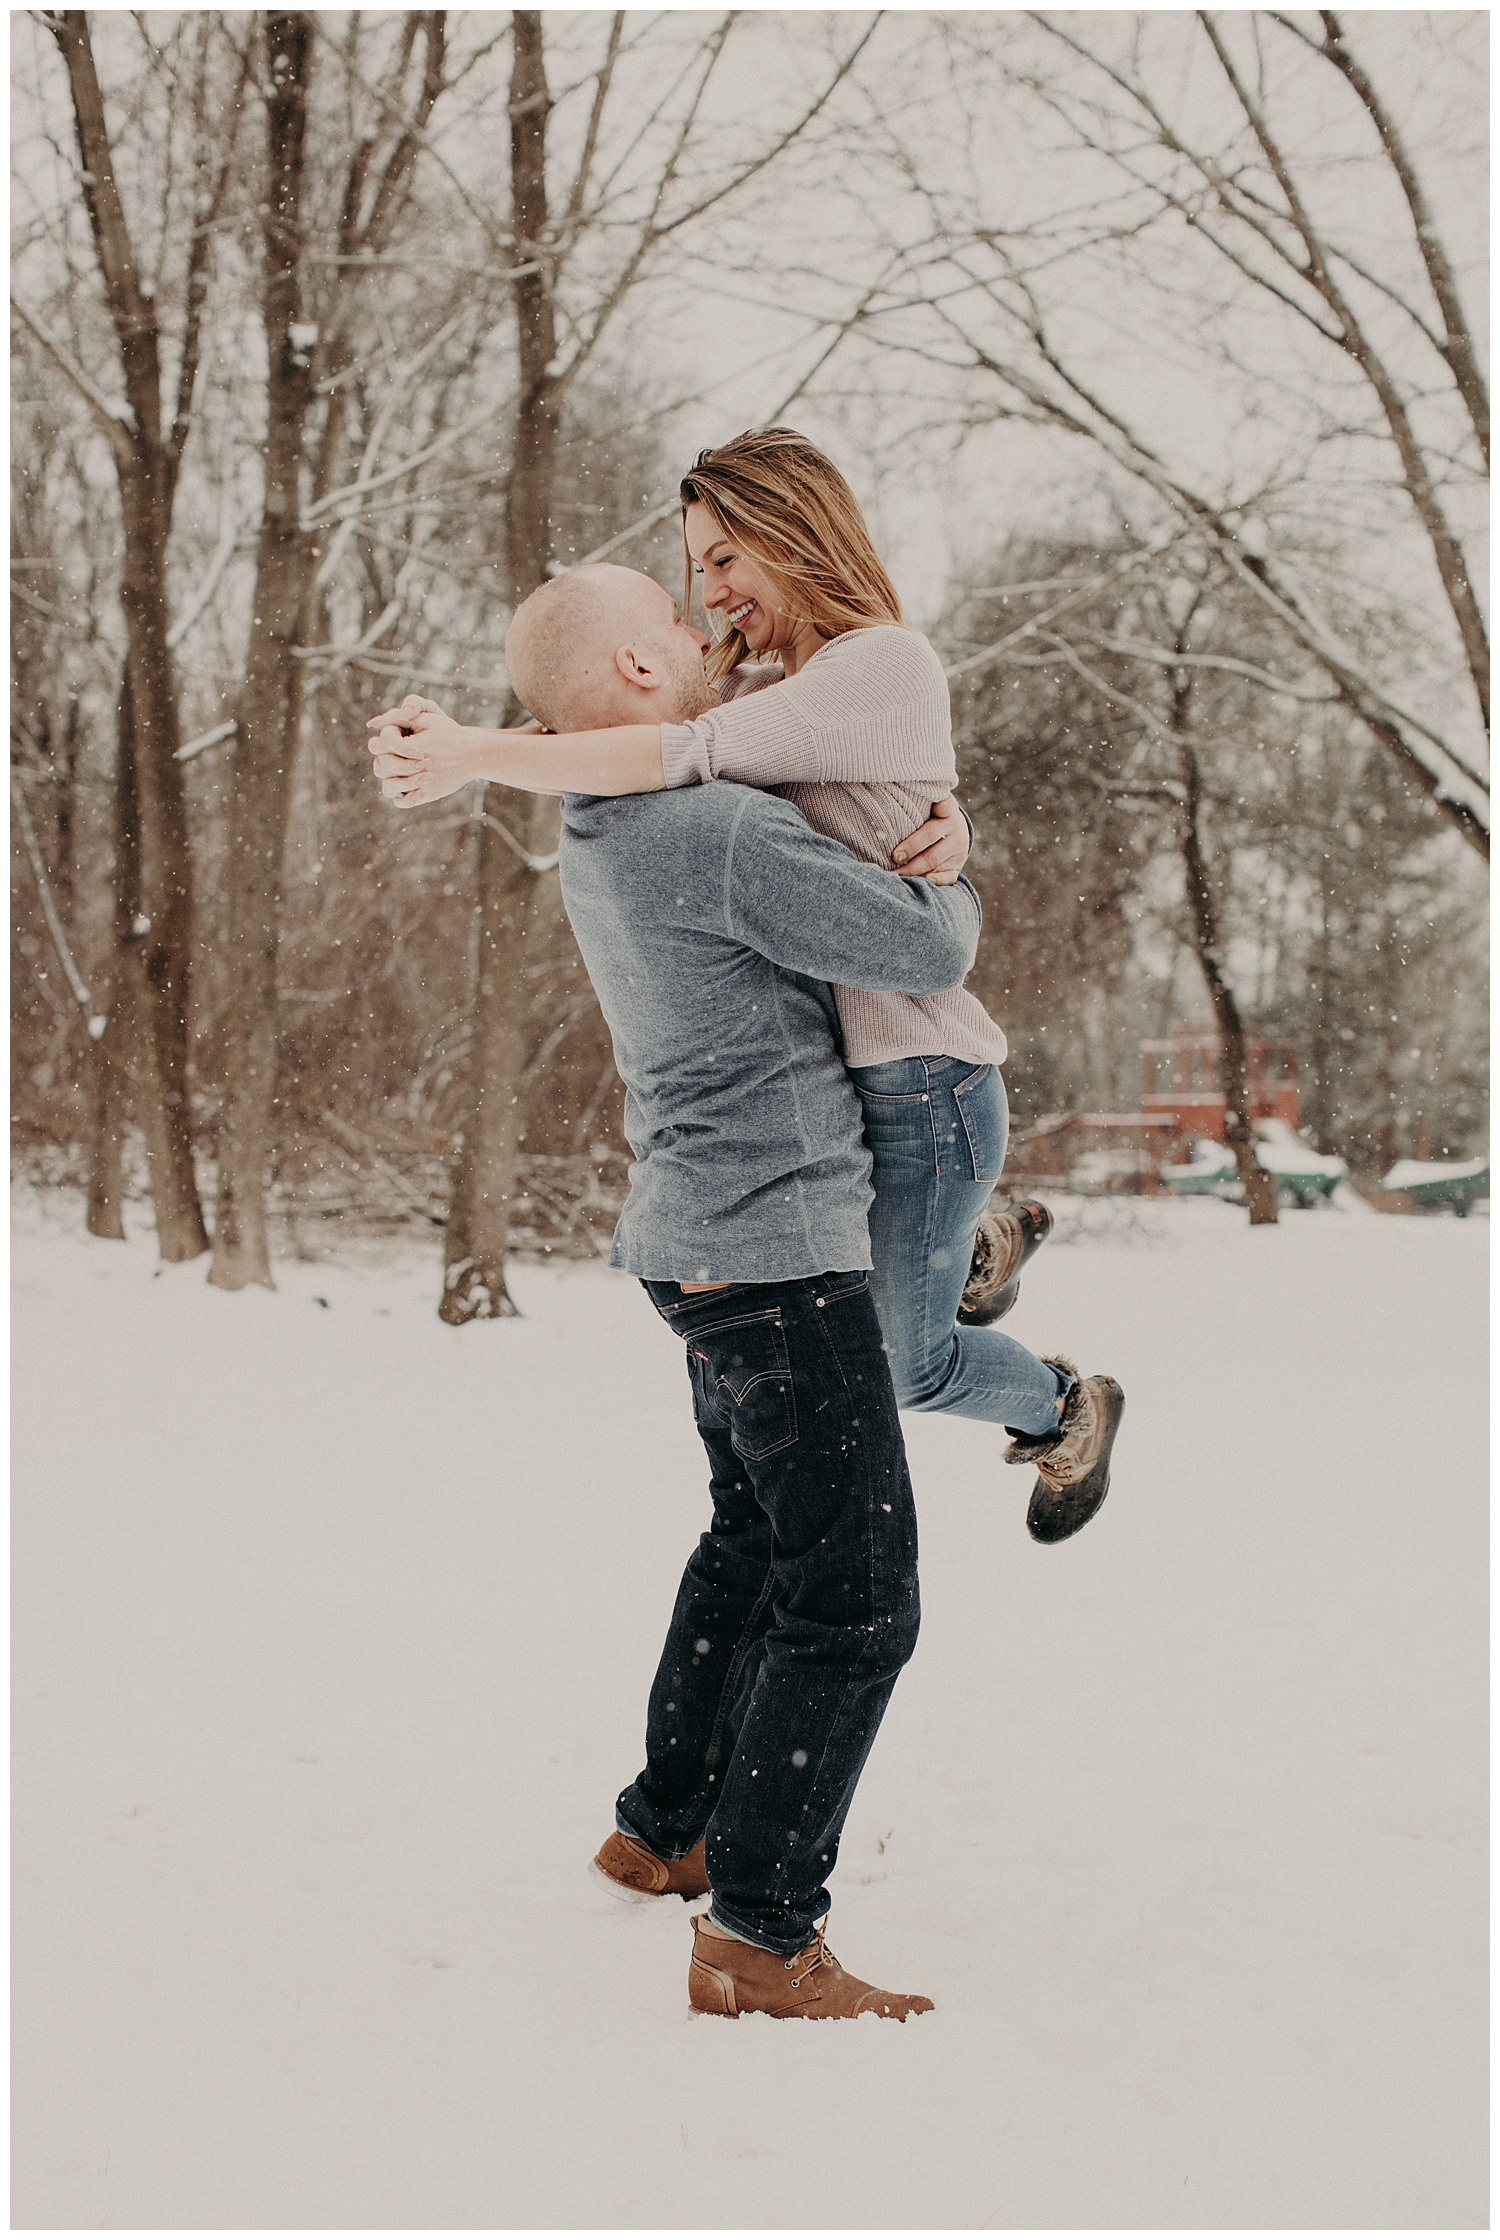 tom-hannah-snow-winter-home-engagement-session-rhode-island23.jpg